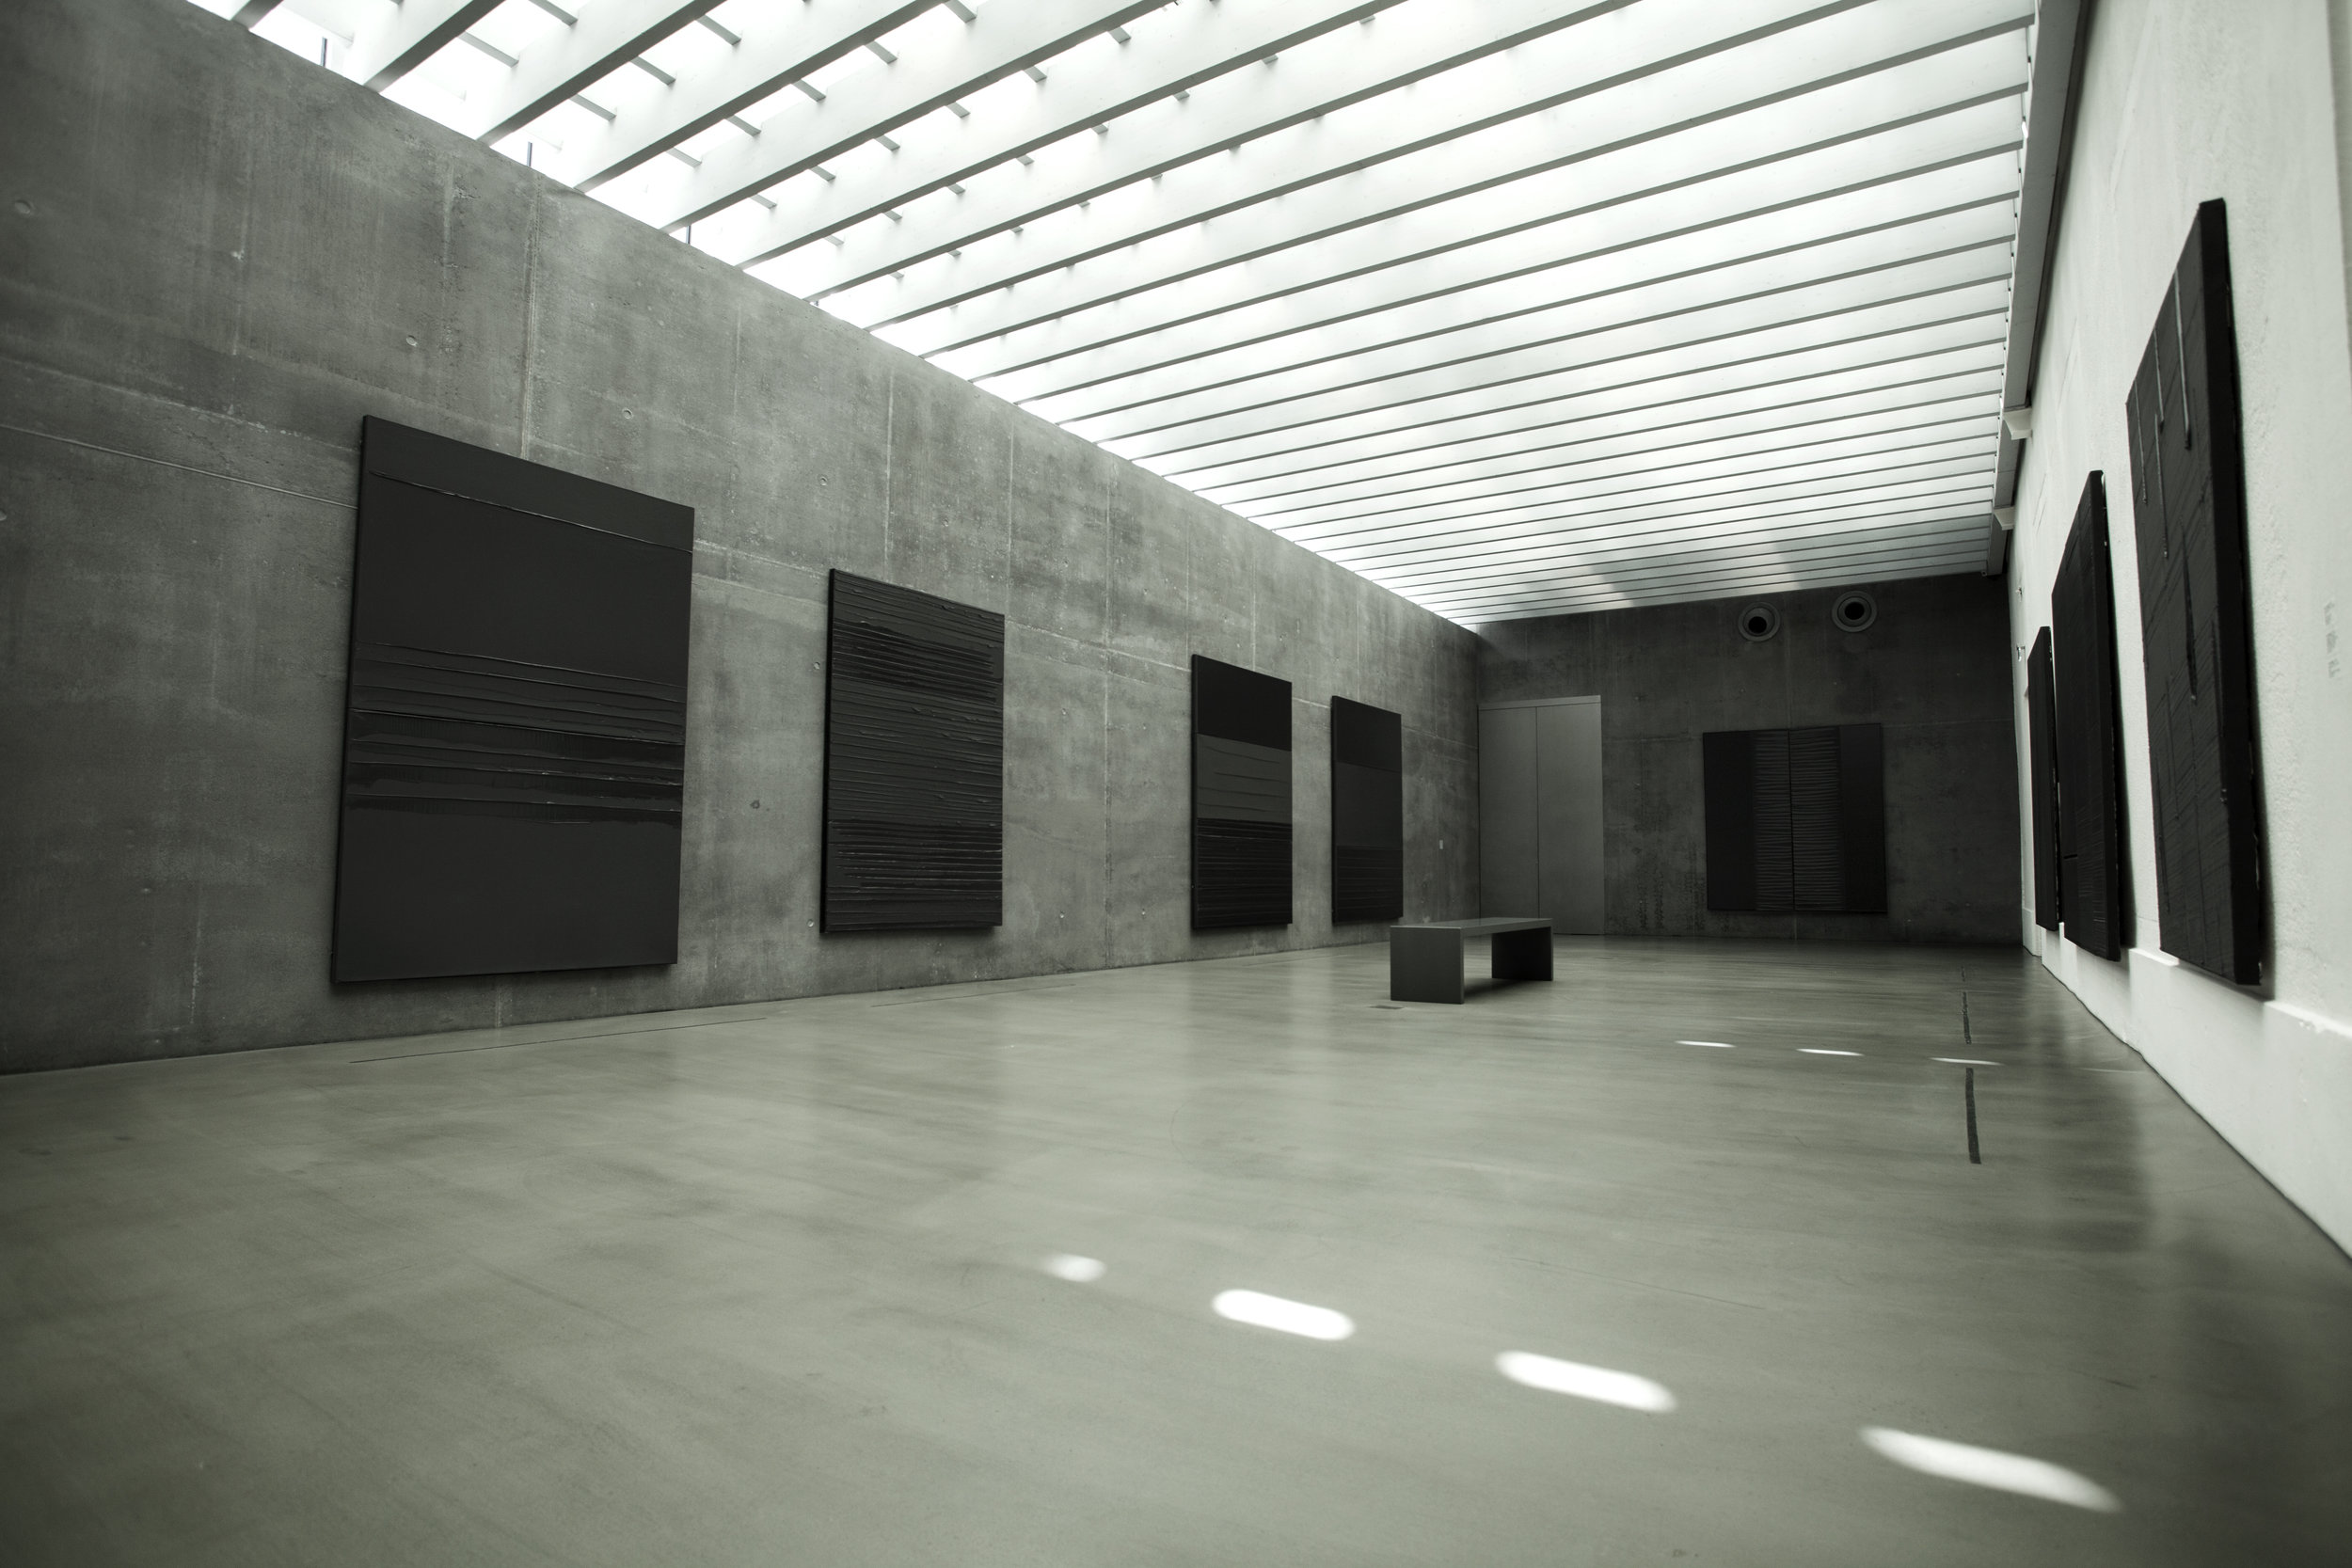 Pierre SOULAGES - A Chapel of Light as an Ode to Black